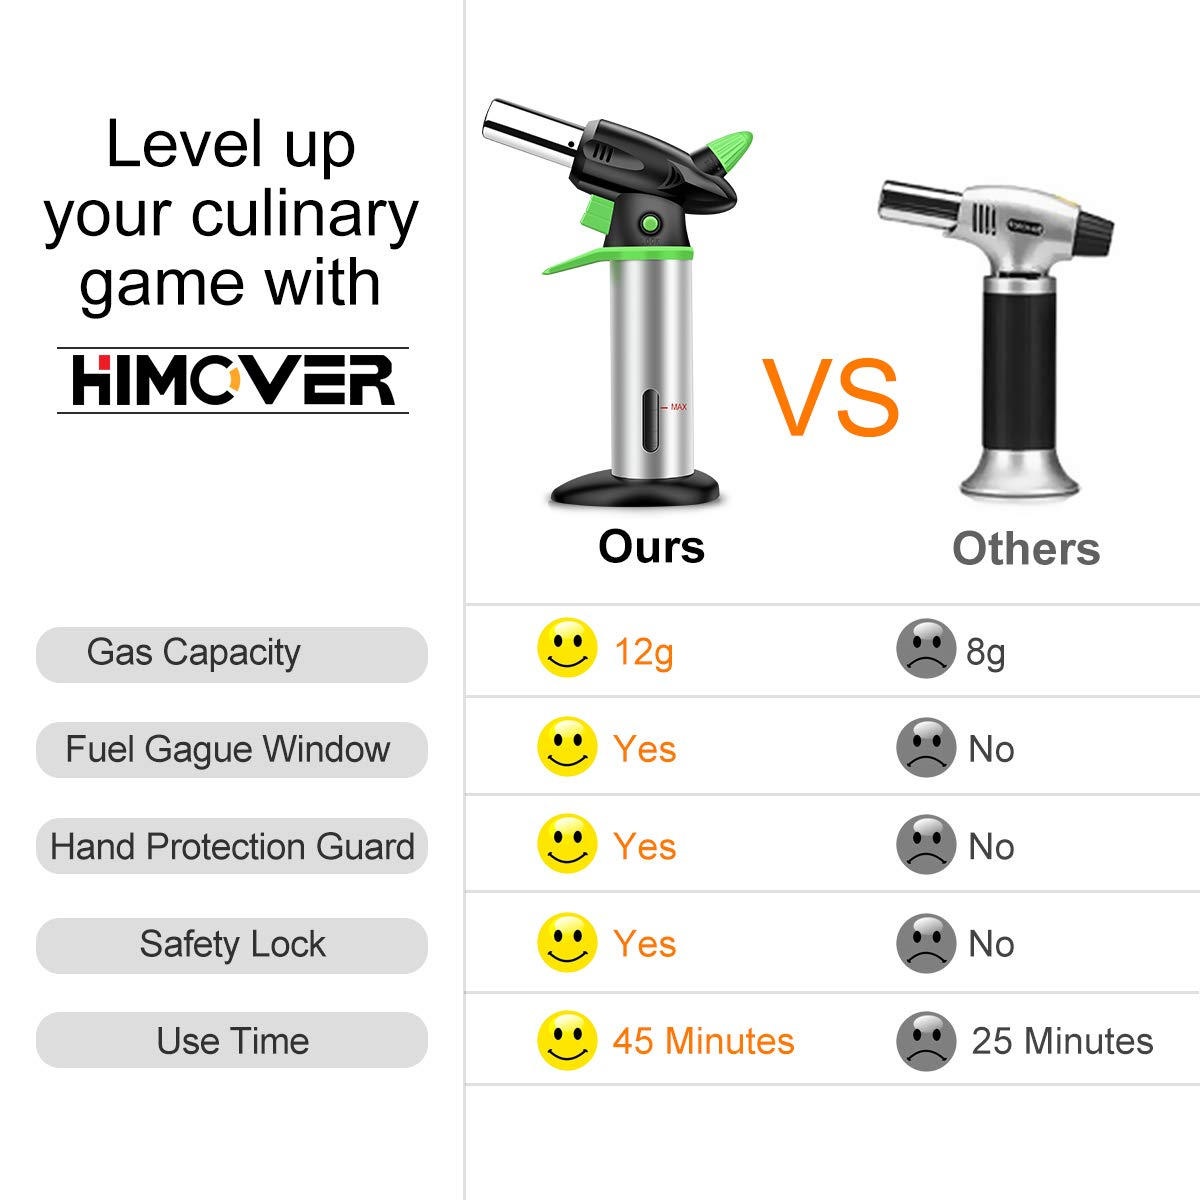 Himover Butane Torch, Culinary Chef Cooking Kitchen Blow Torch Refillable Flame Lighter with Safety Lock for Baking, DIY, Creme Brulee, BBQ and Soldering (Butane Fuel Not Included) by Himover (Image #2)